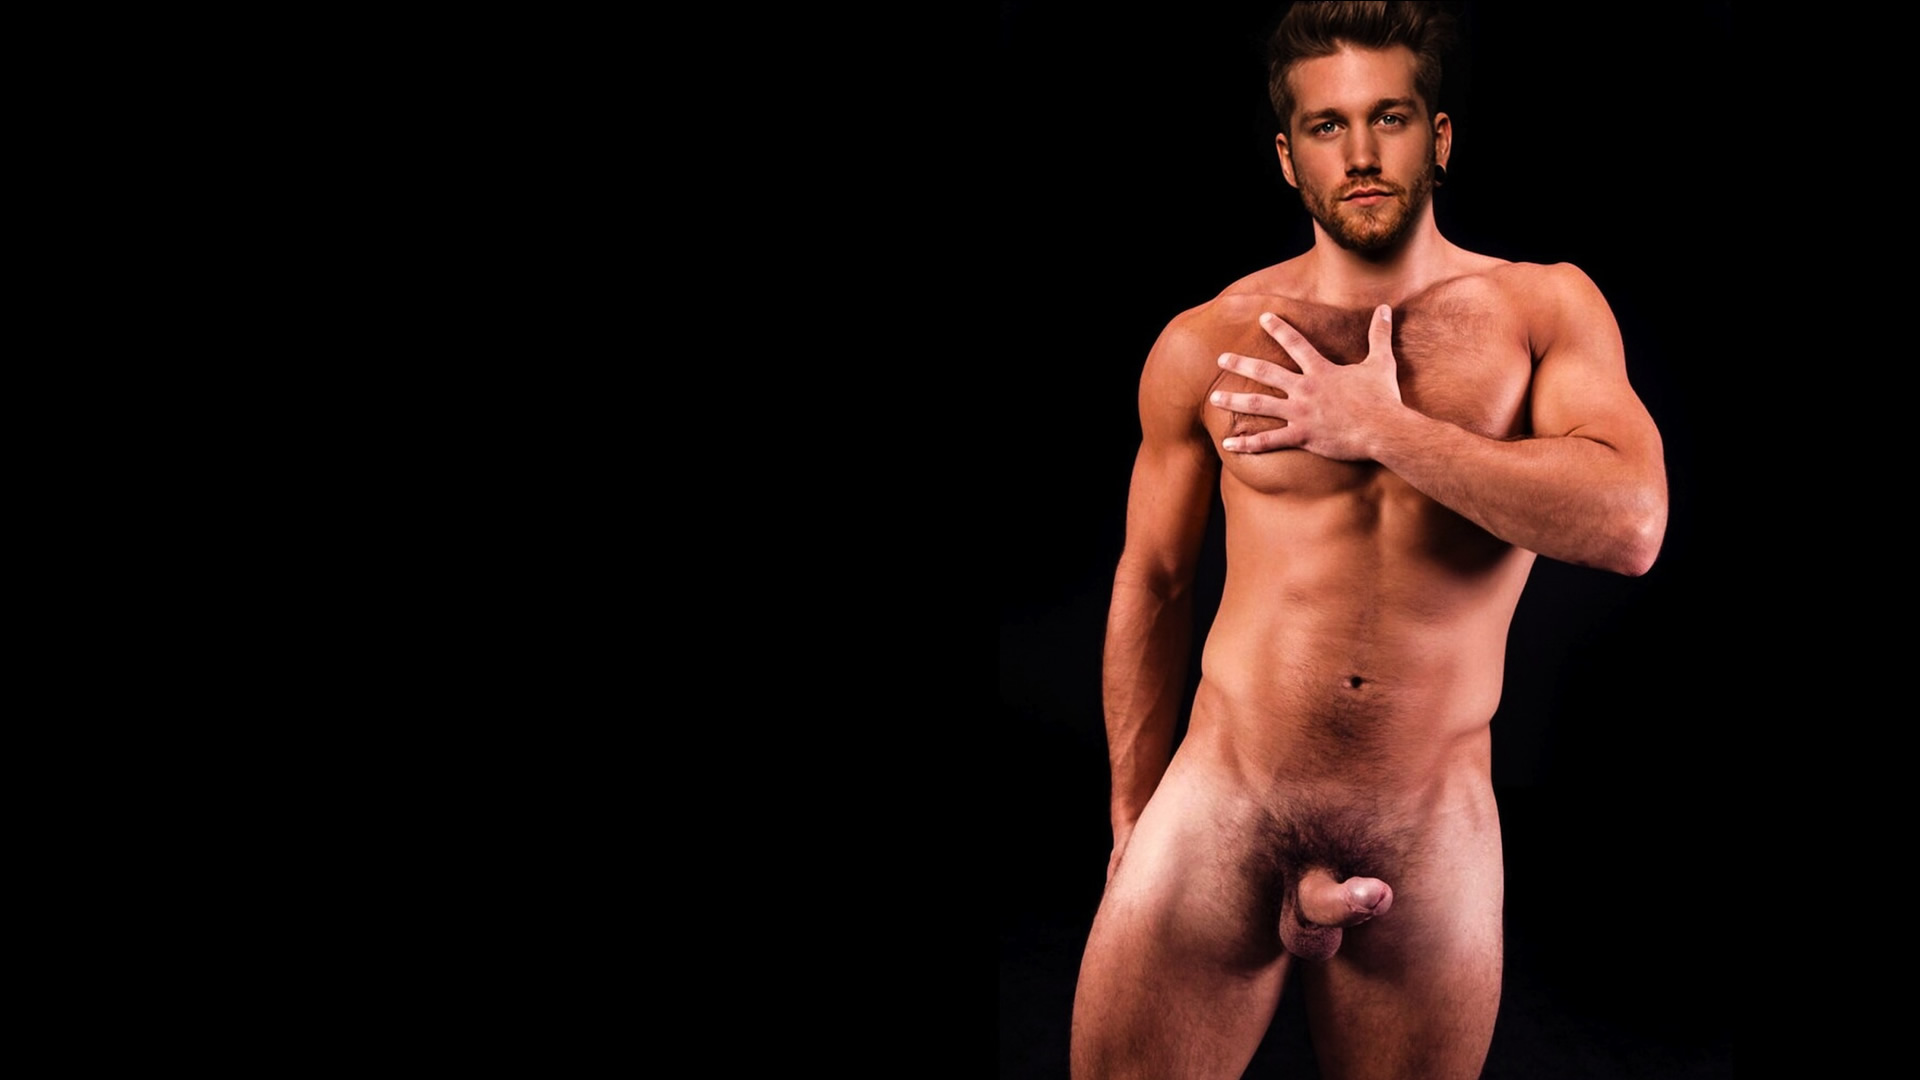 Nude Male Actors Full Frontal Think